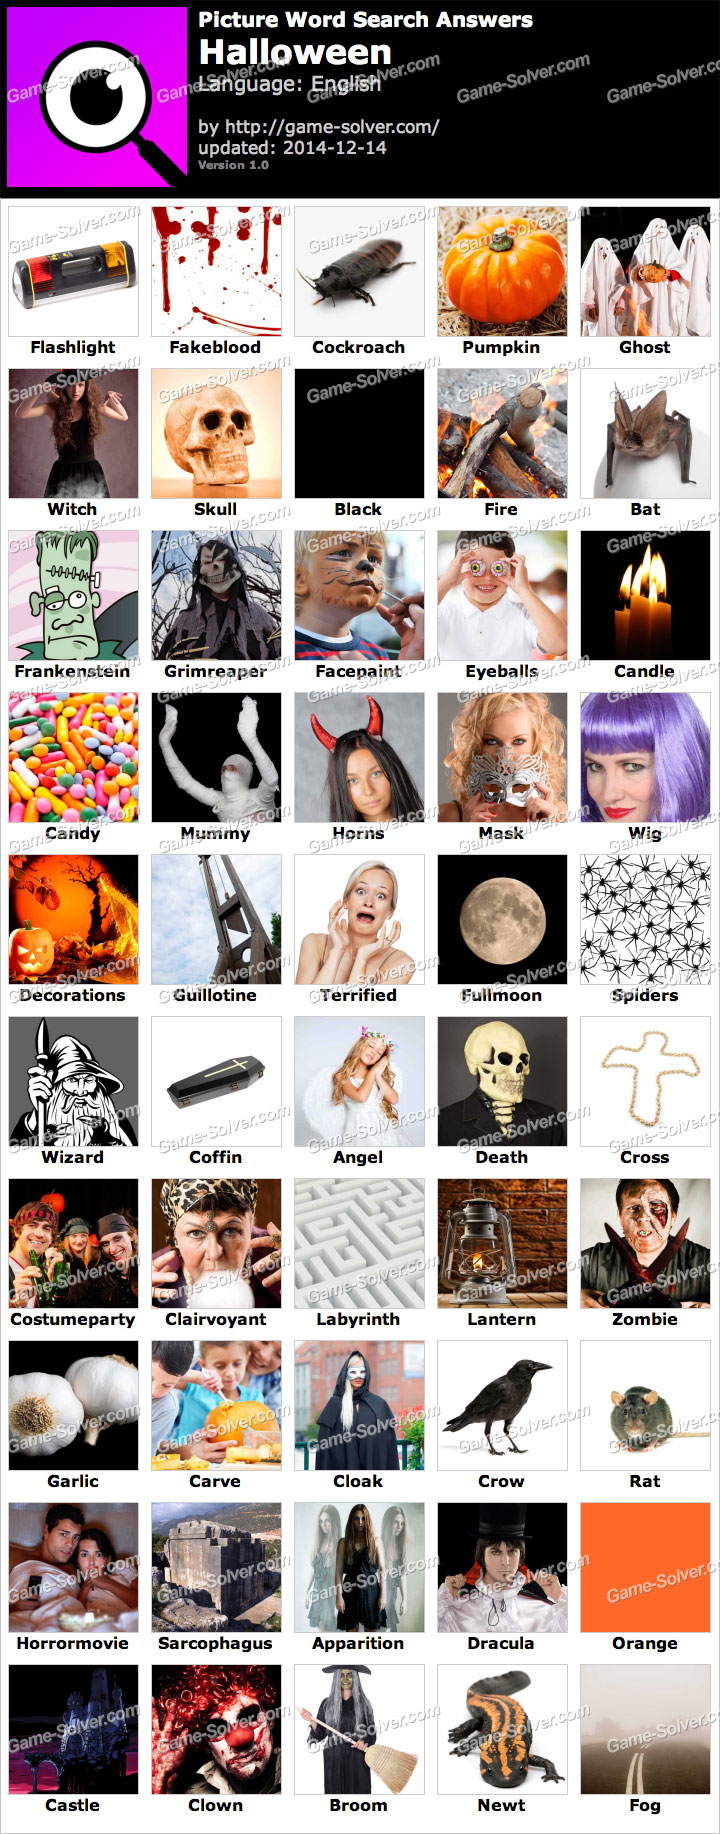 Picture Word Search Halloween Answers - Game Solver